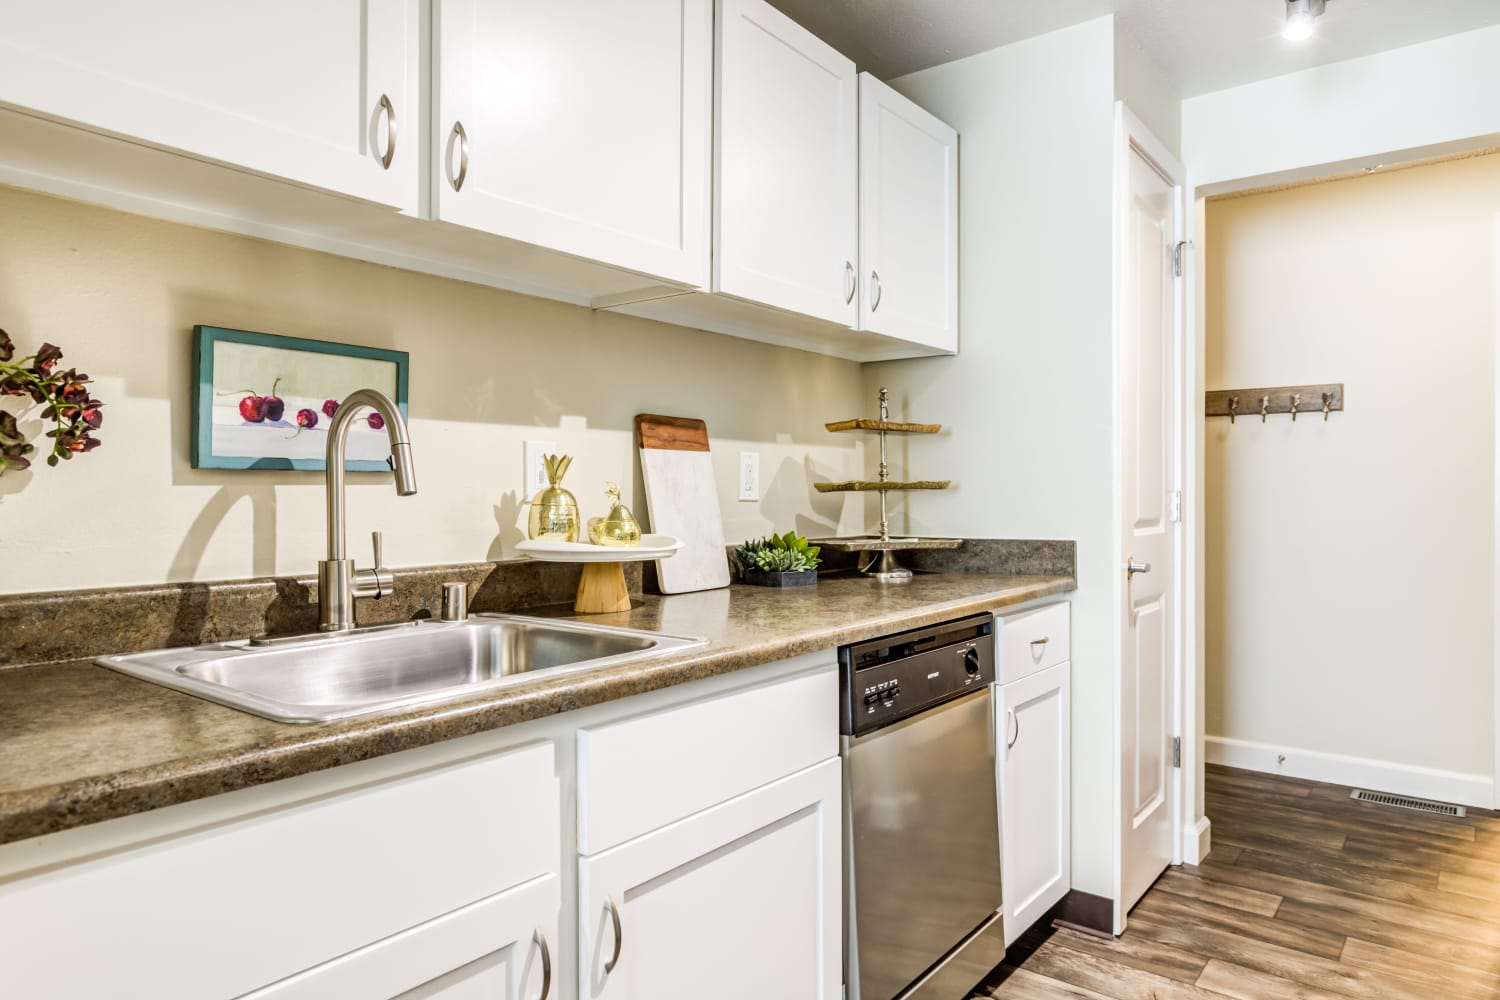 Kitchen with ample counter space at Edgewood Park Apartments in Bellevue, Washington